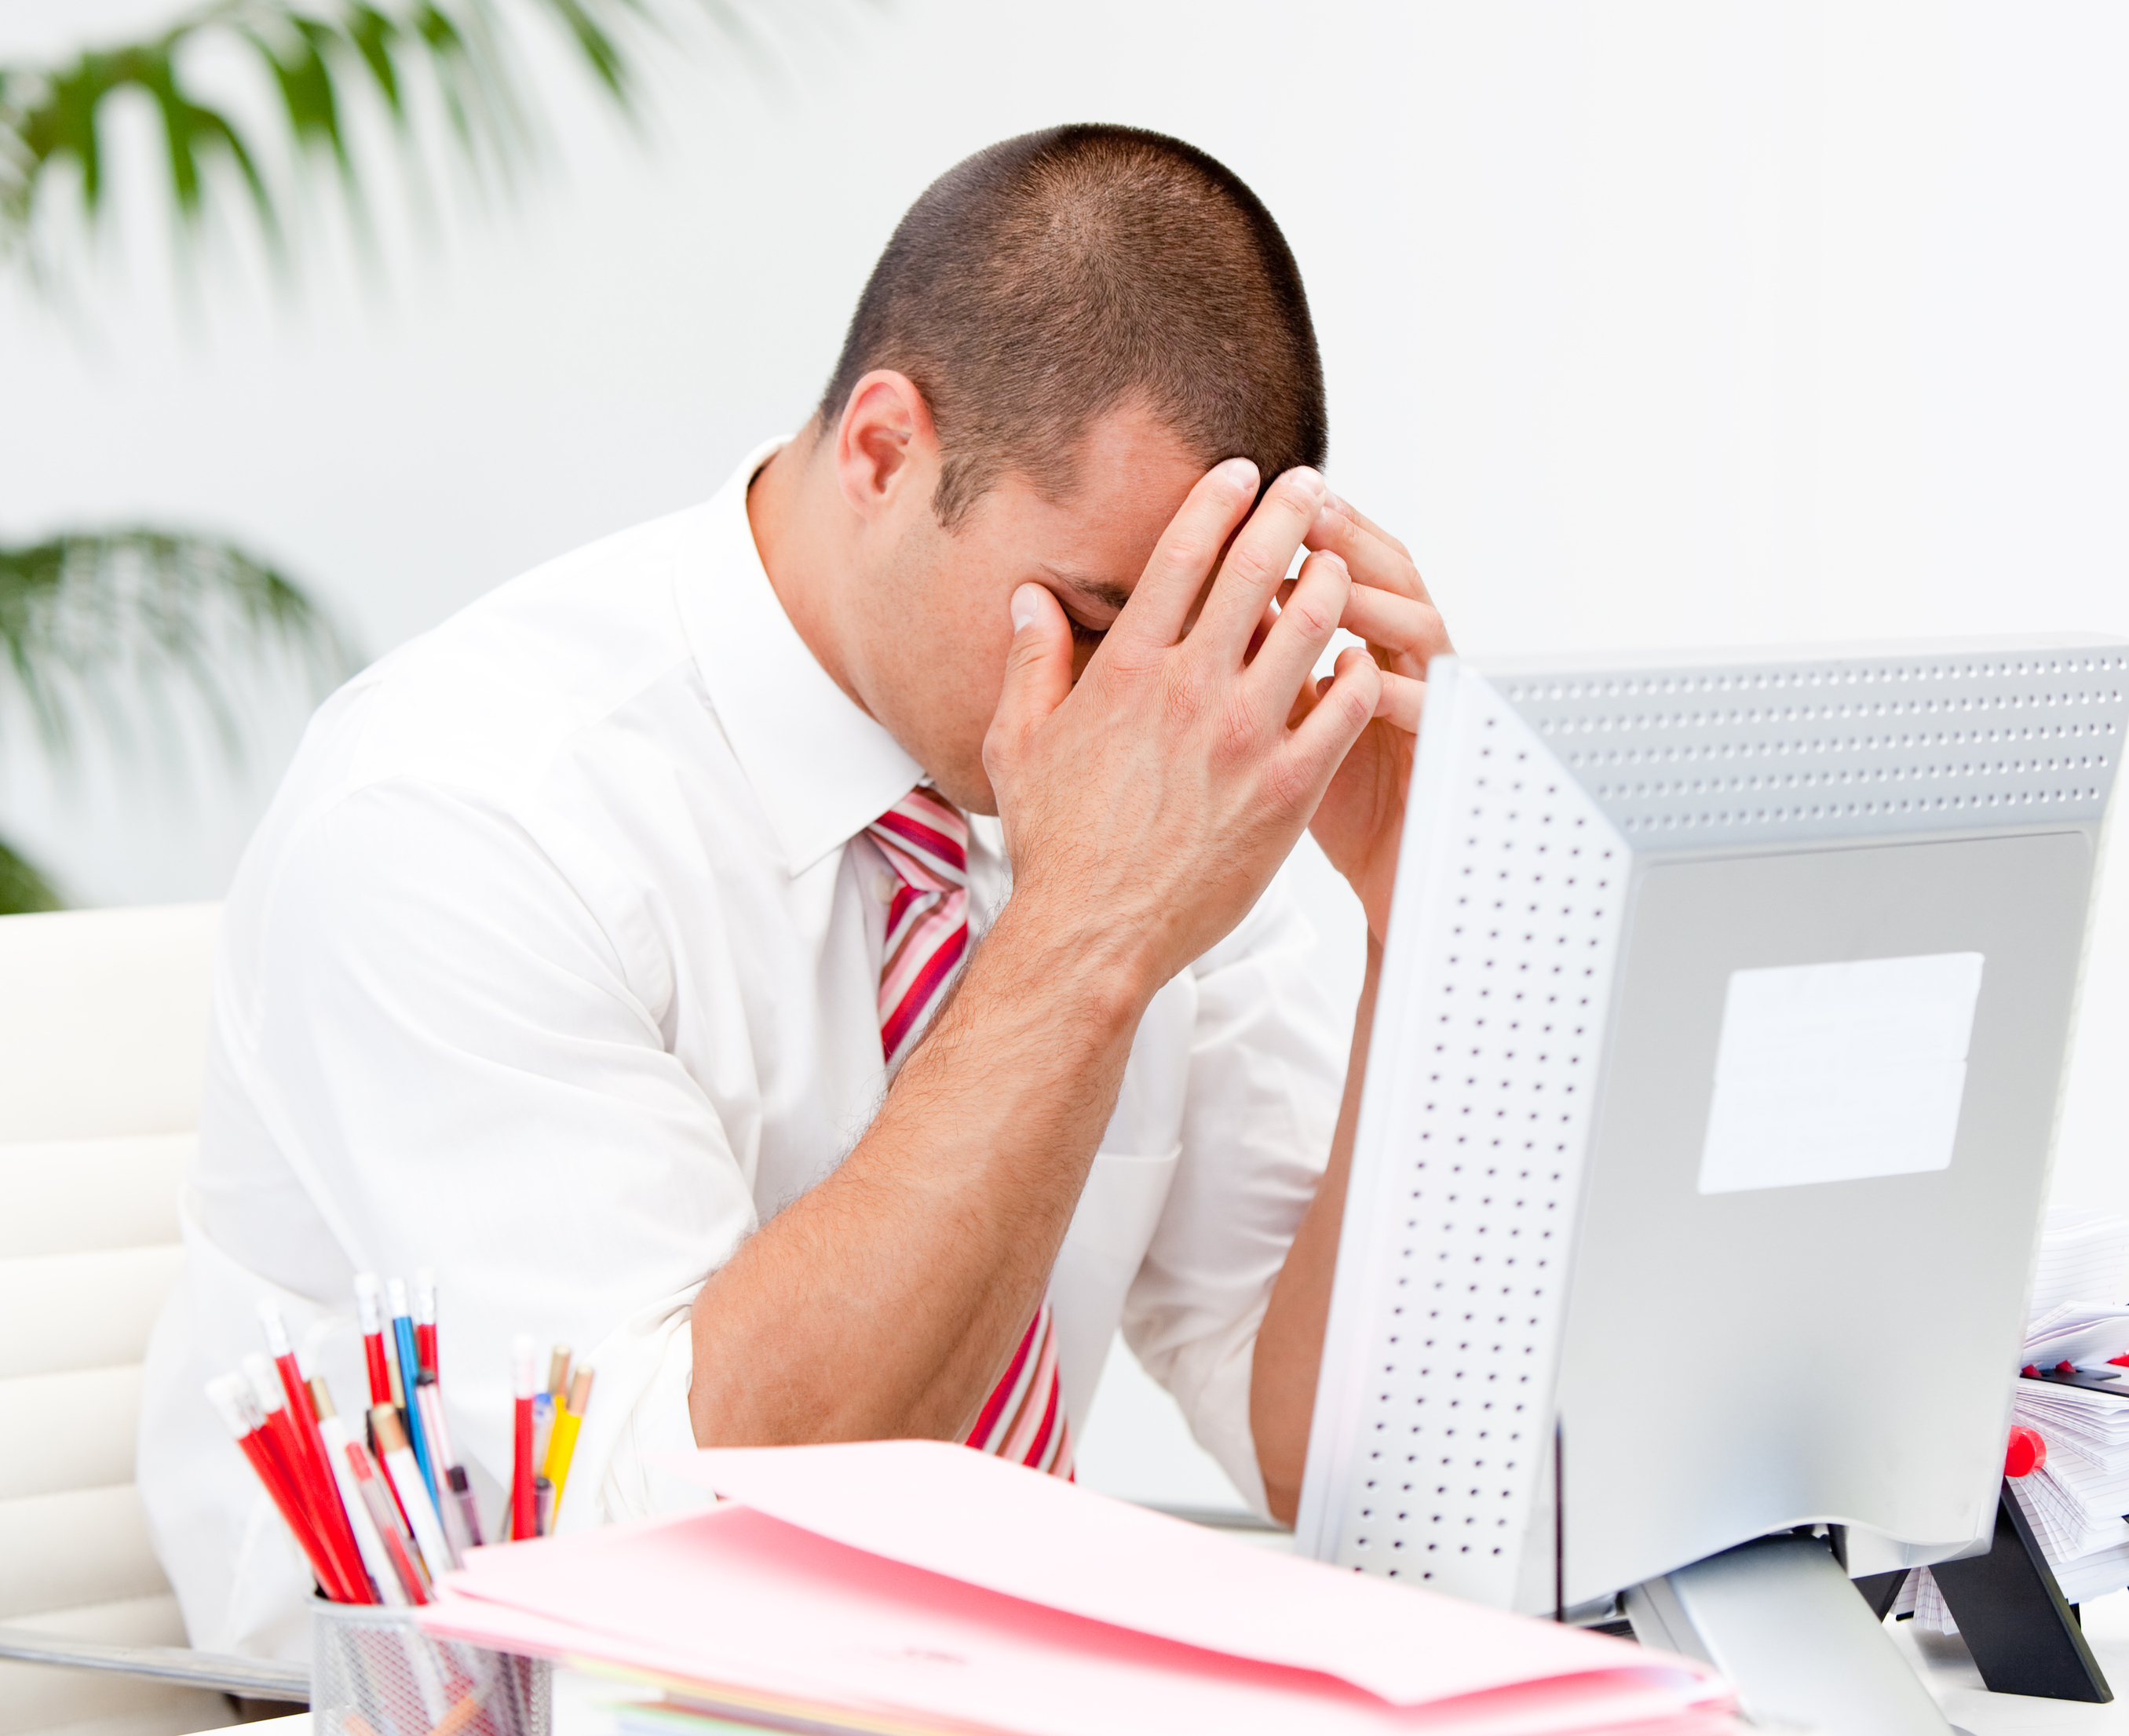 photodune-8276798-frustrated-businessman-working-at-a-computer-l (1)